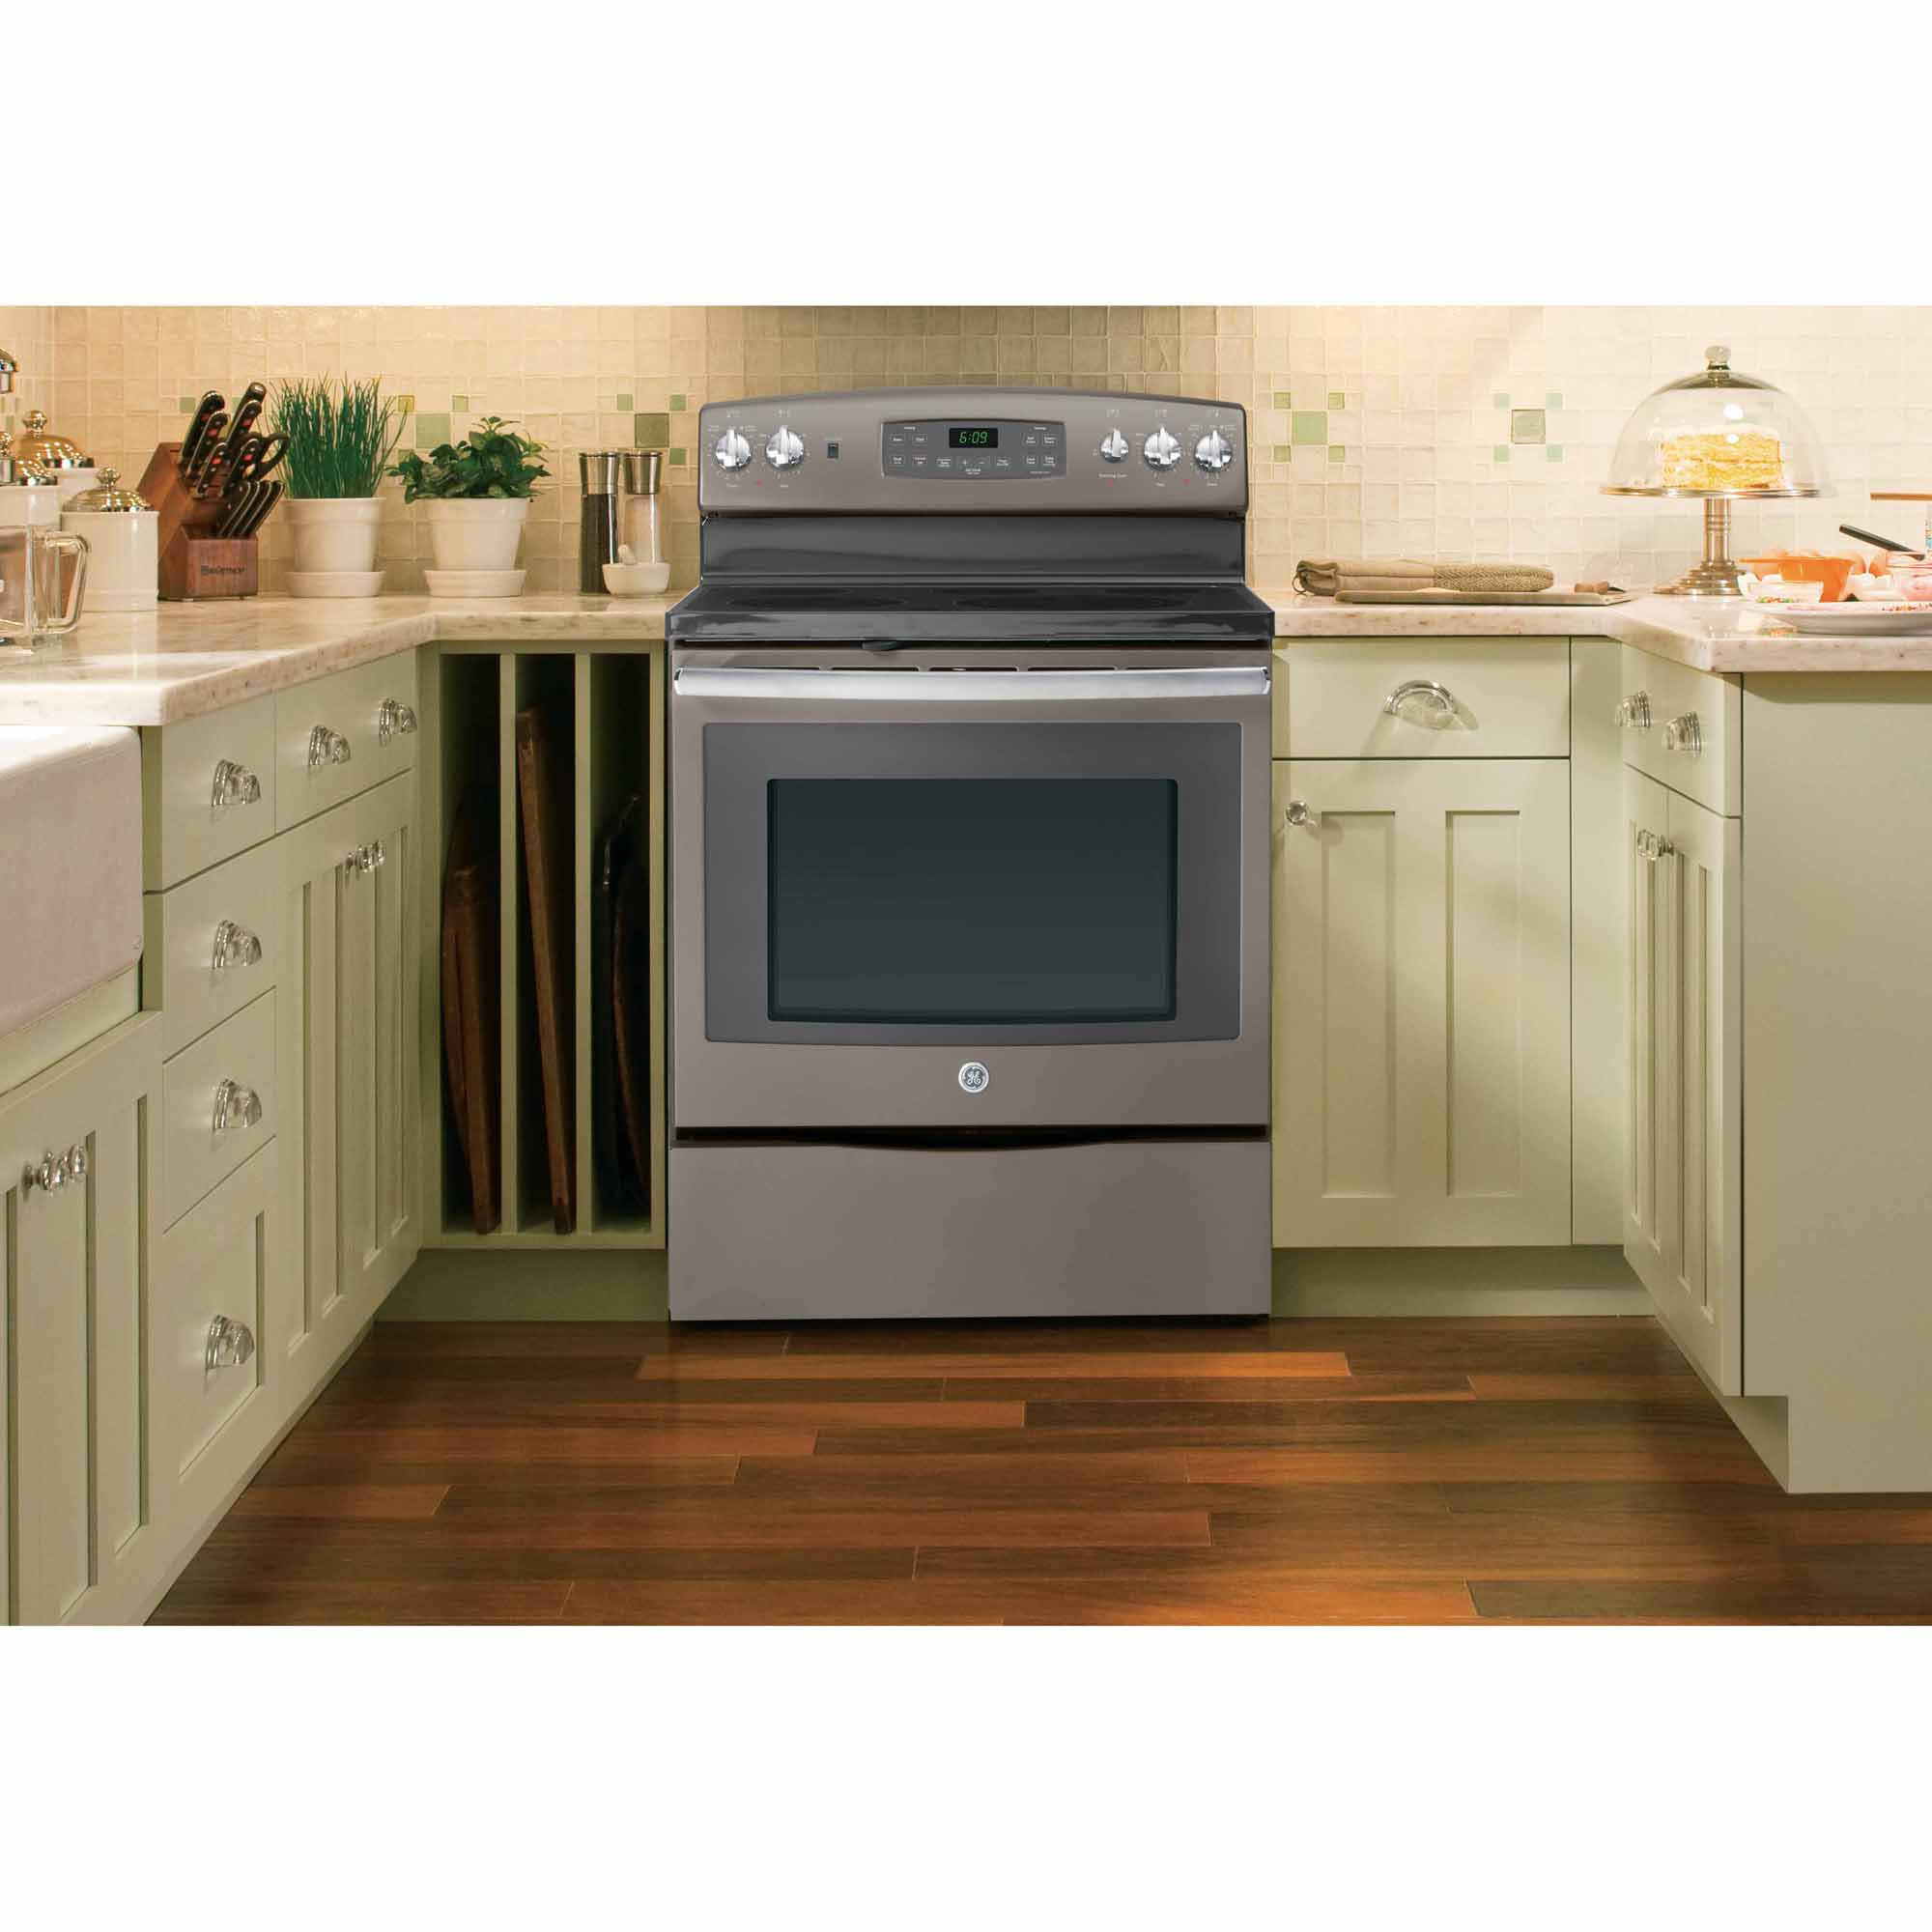 GE 5.3 cu. ft. Electric Range w/ Convection Oven - Slate